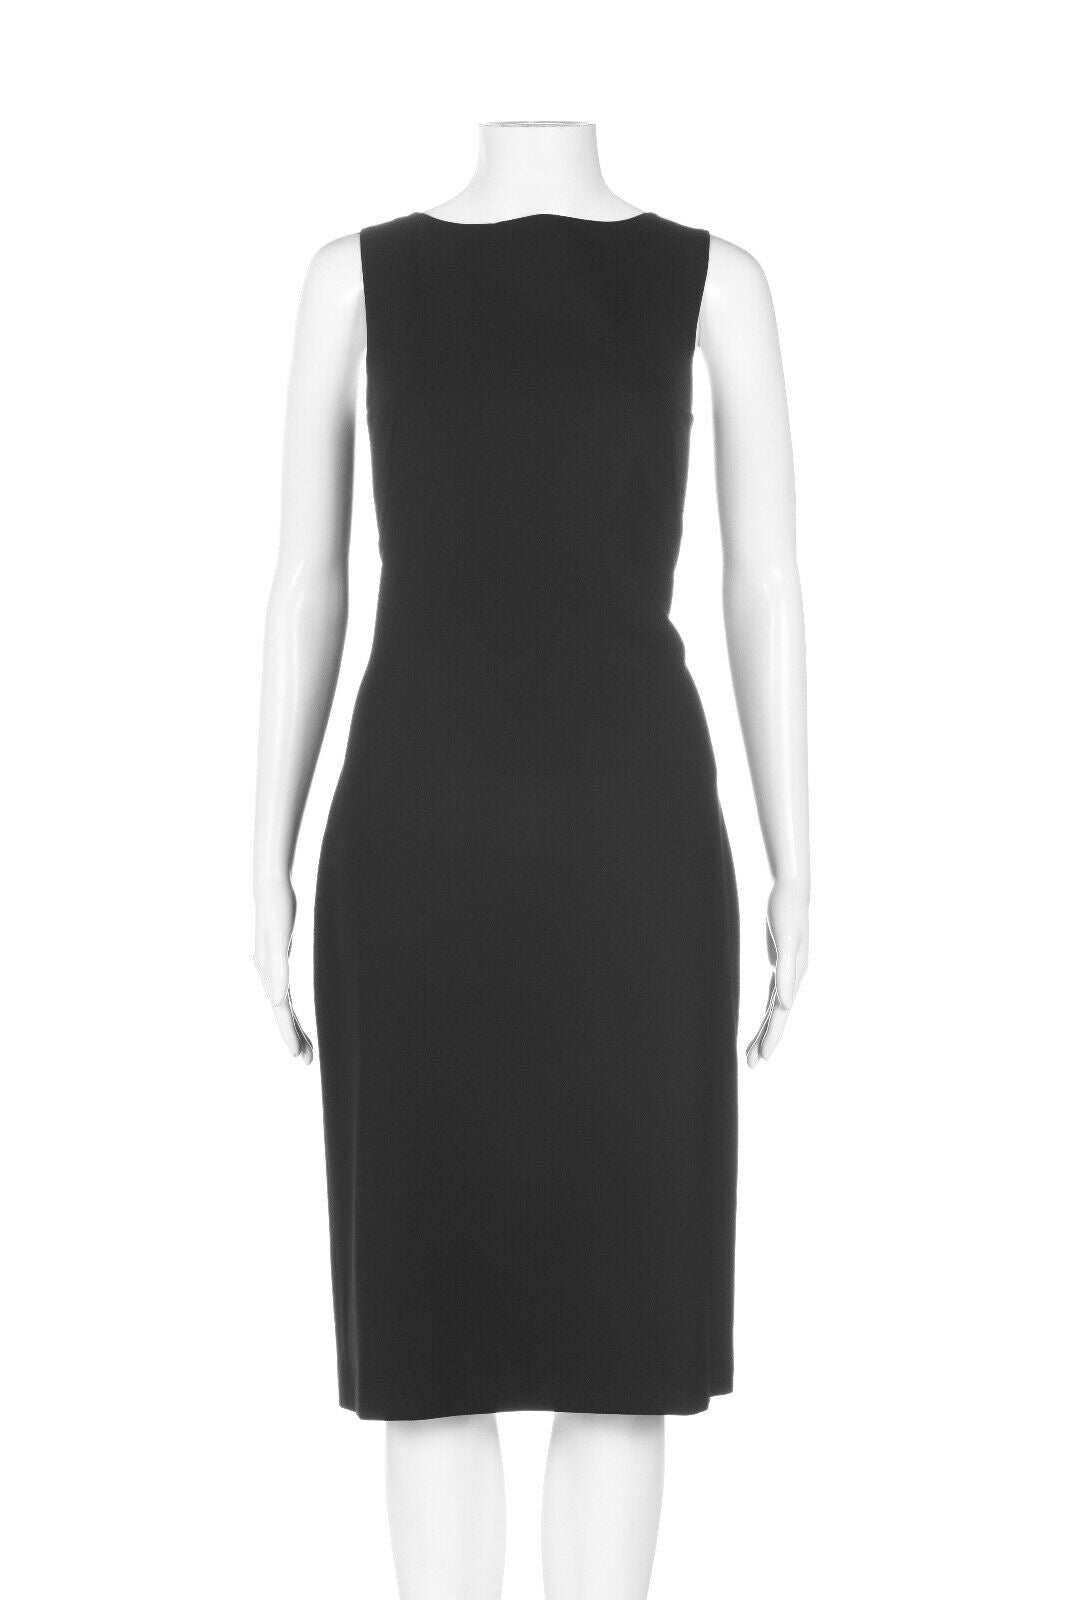 THEORY Sheath Dress Size 8